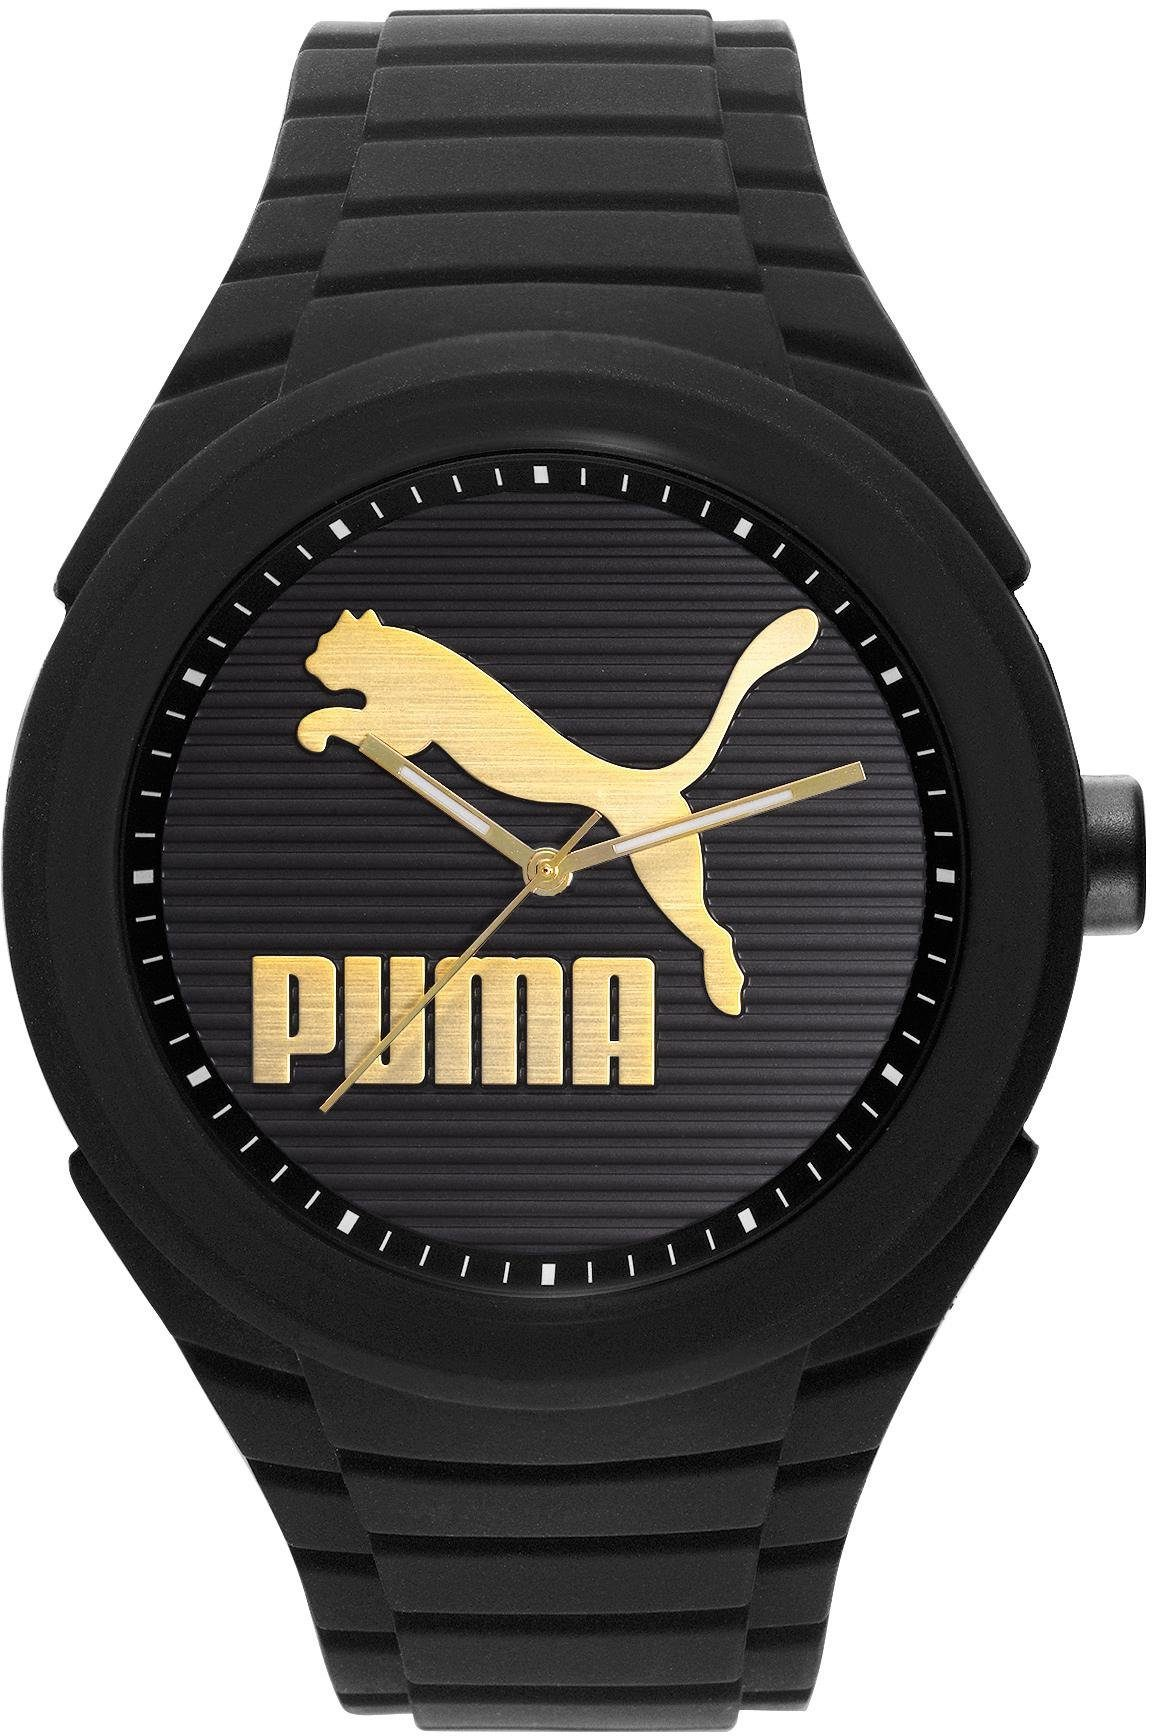 PUMA Quarzuhr »PU10359 Gummy Cat -Black gold, PU103592016«